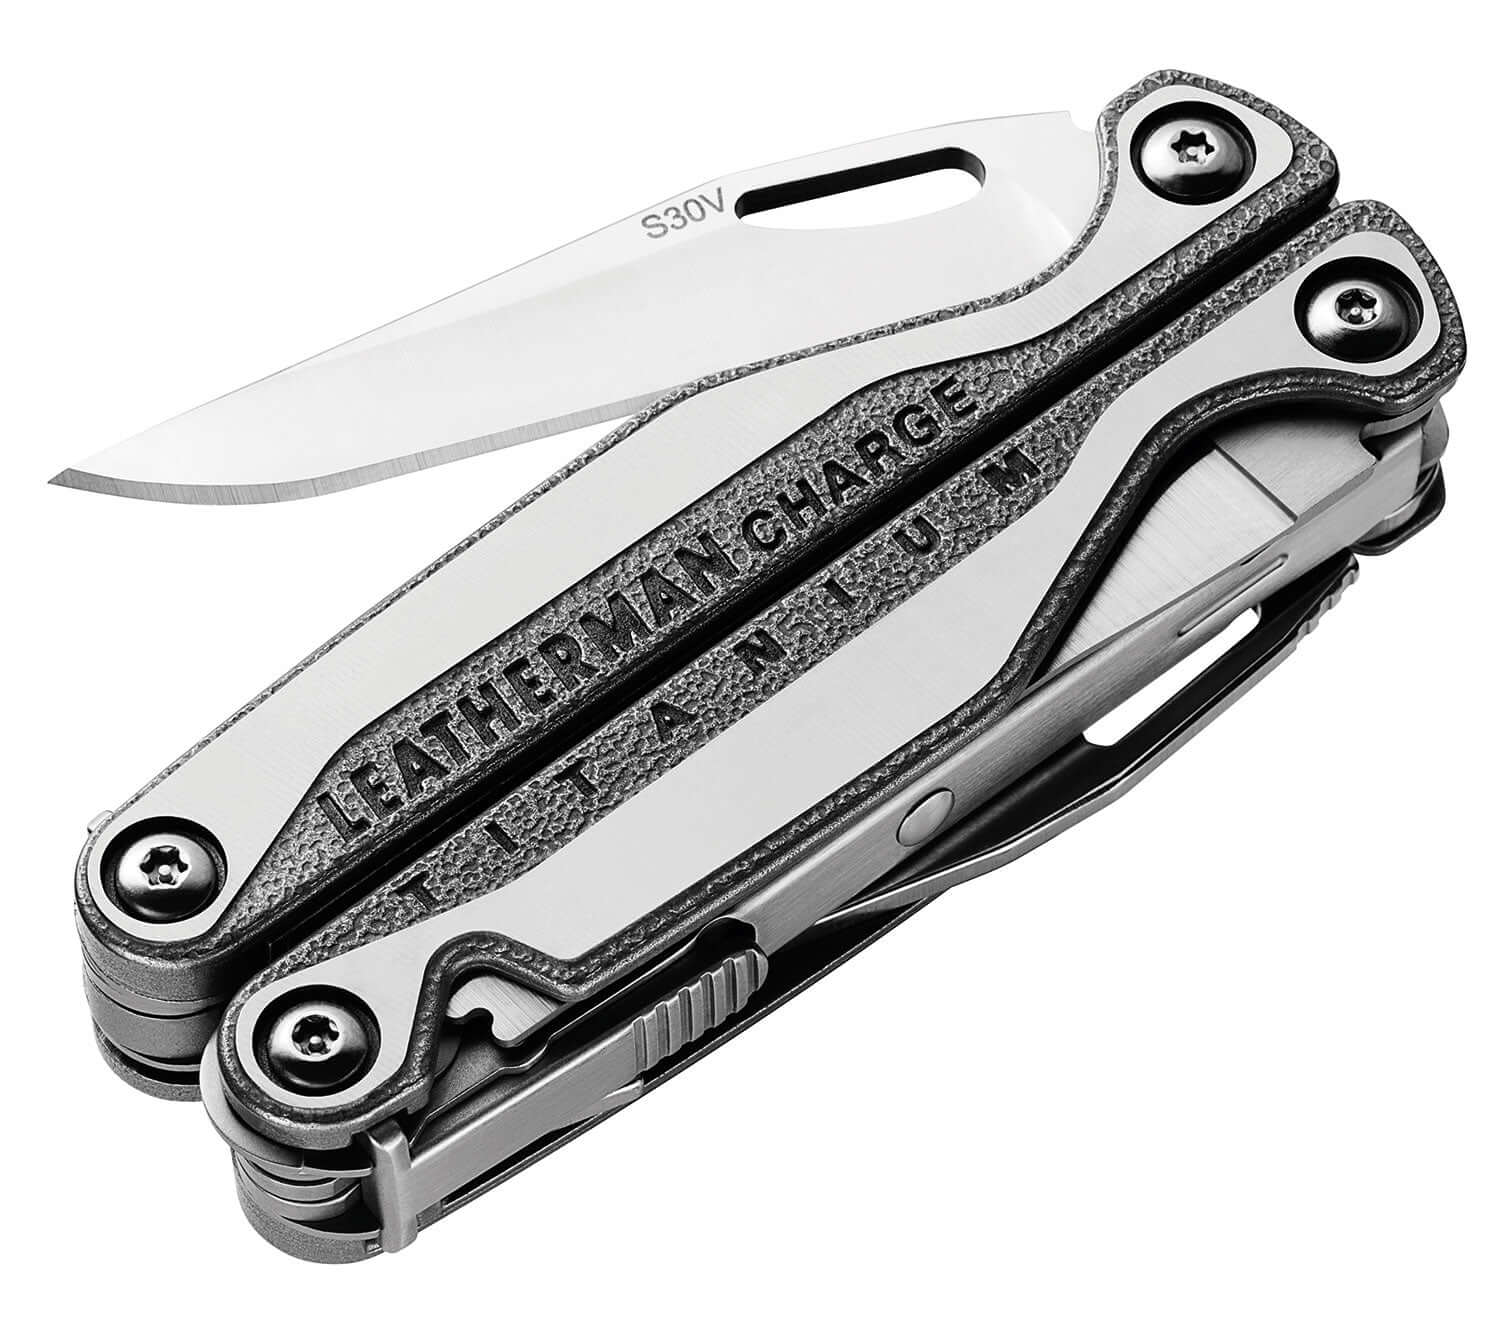 Leatherman Charge Titanium  Multi Tool